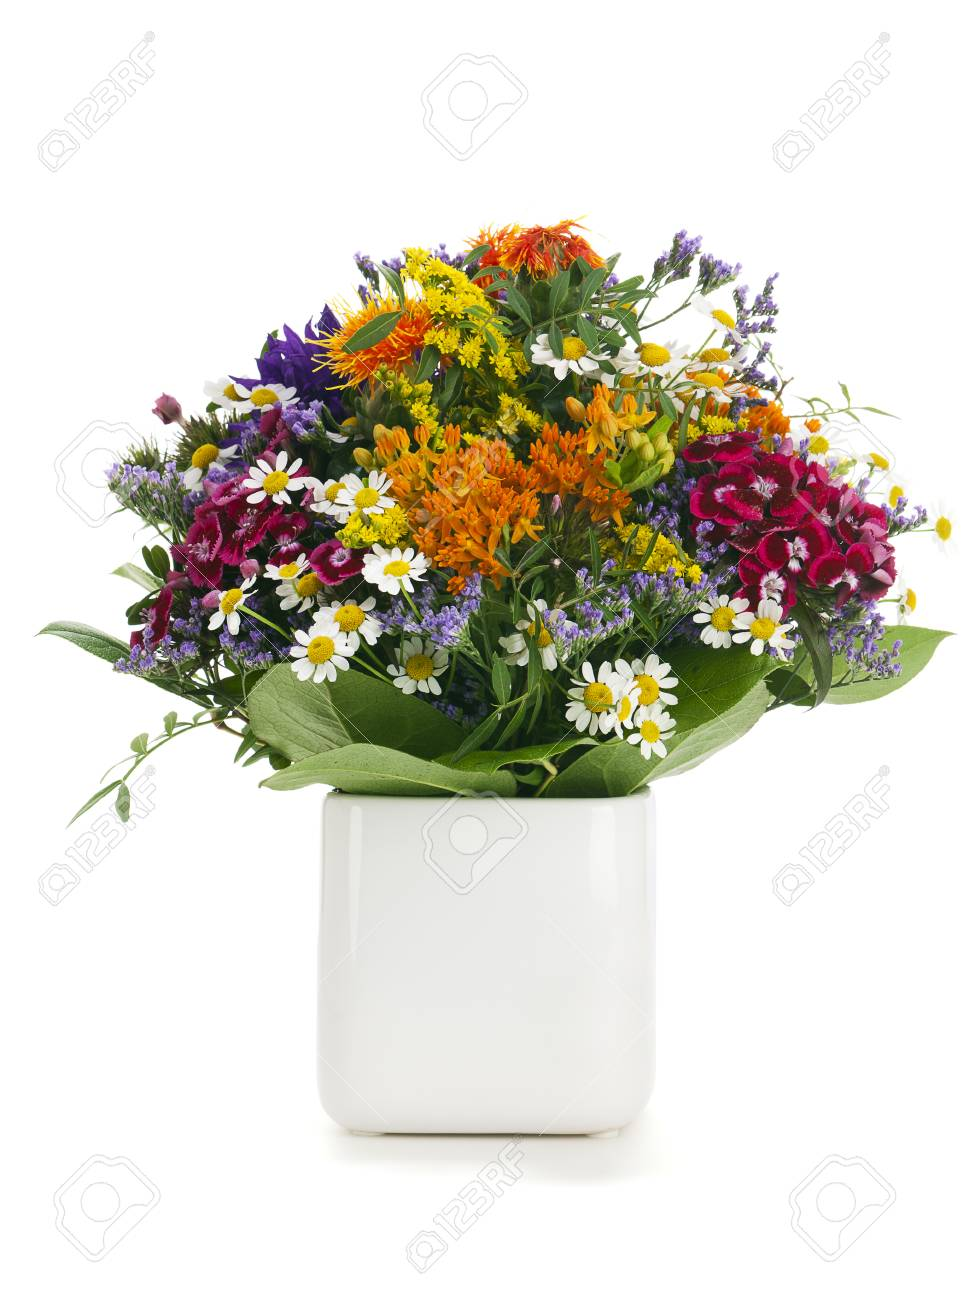 Variety Of Colorful Summer Flowers Arranged In A Vase Stock Photo ...